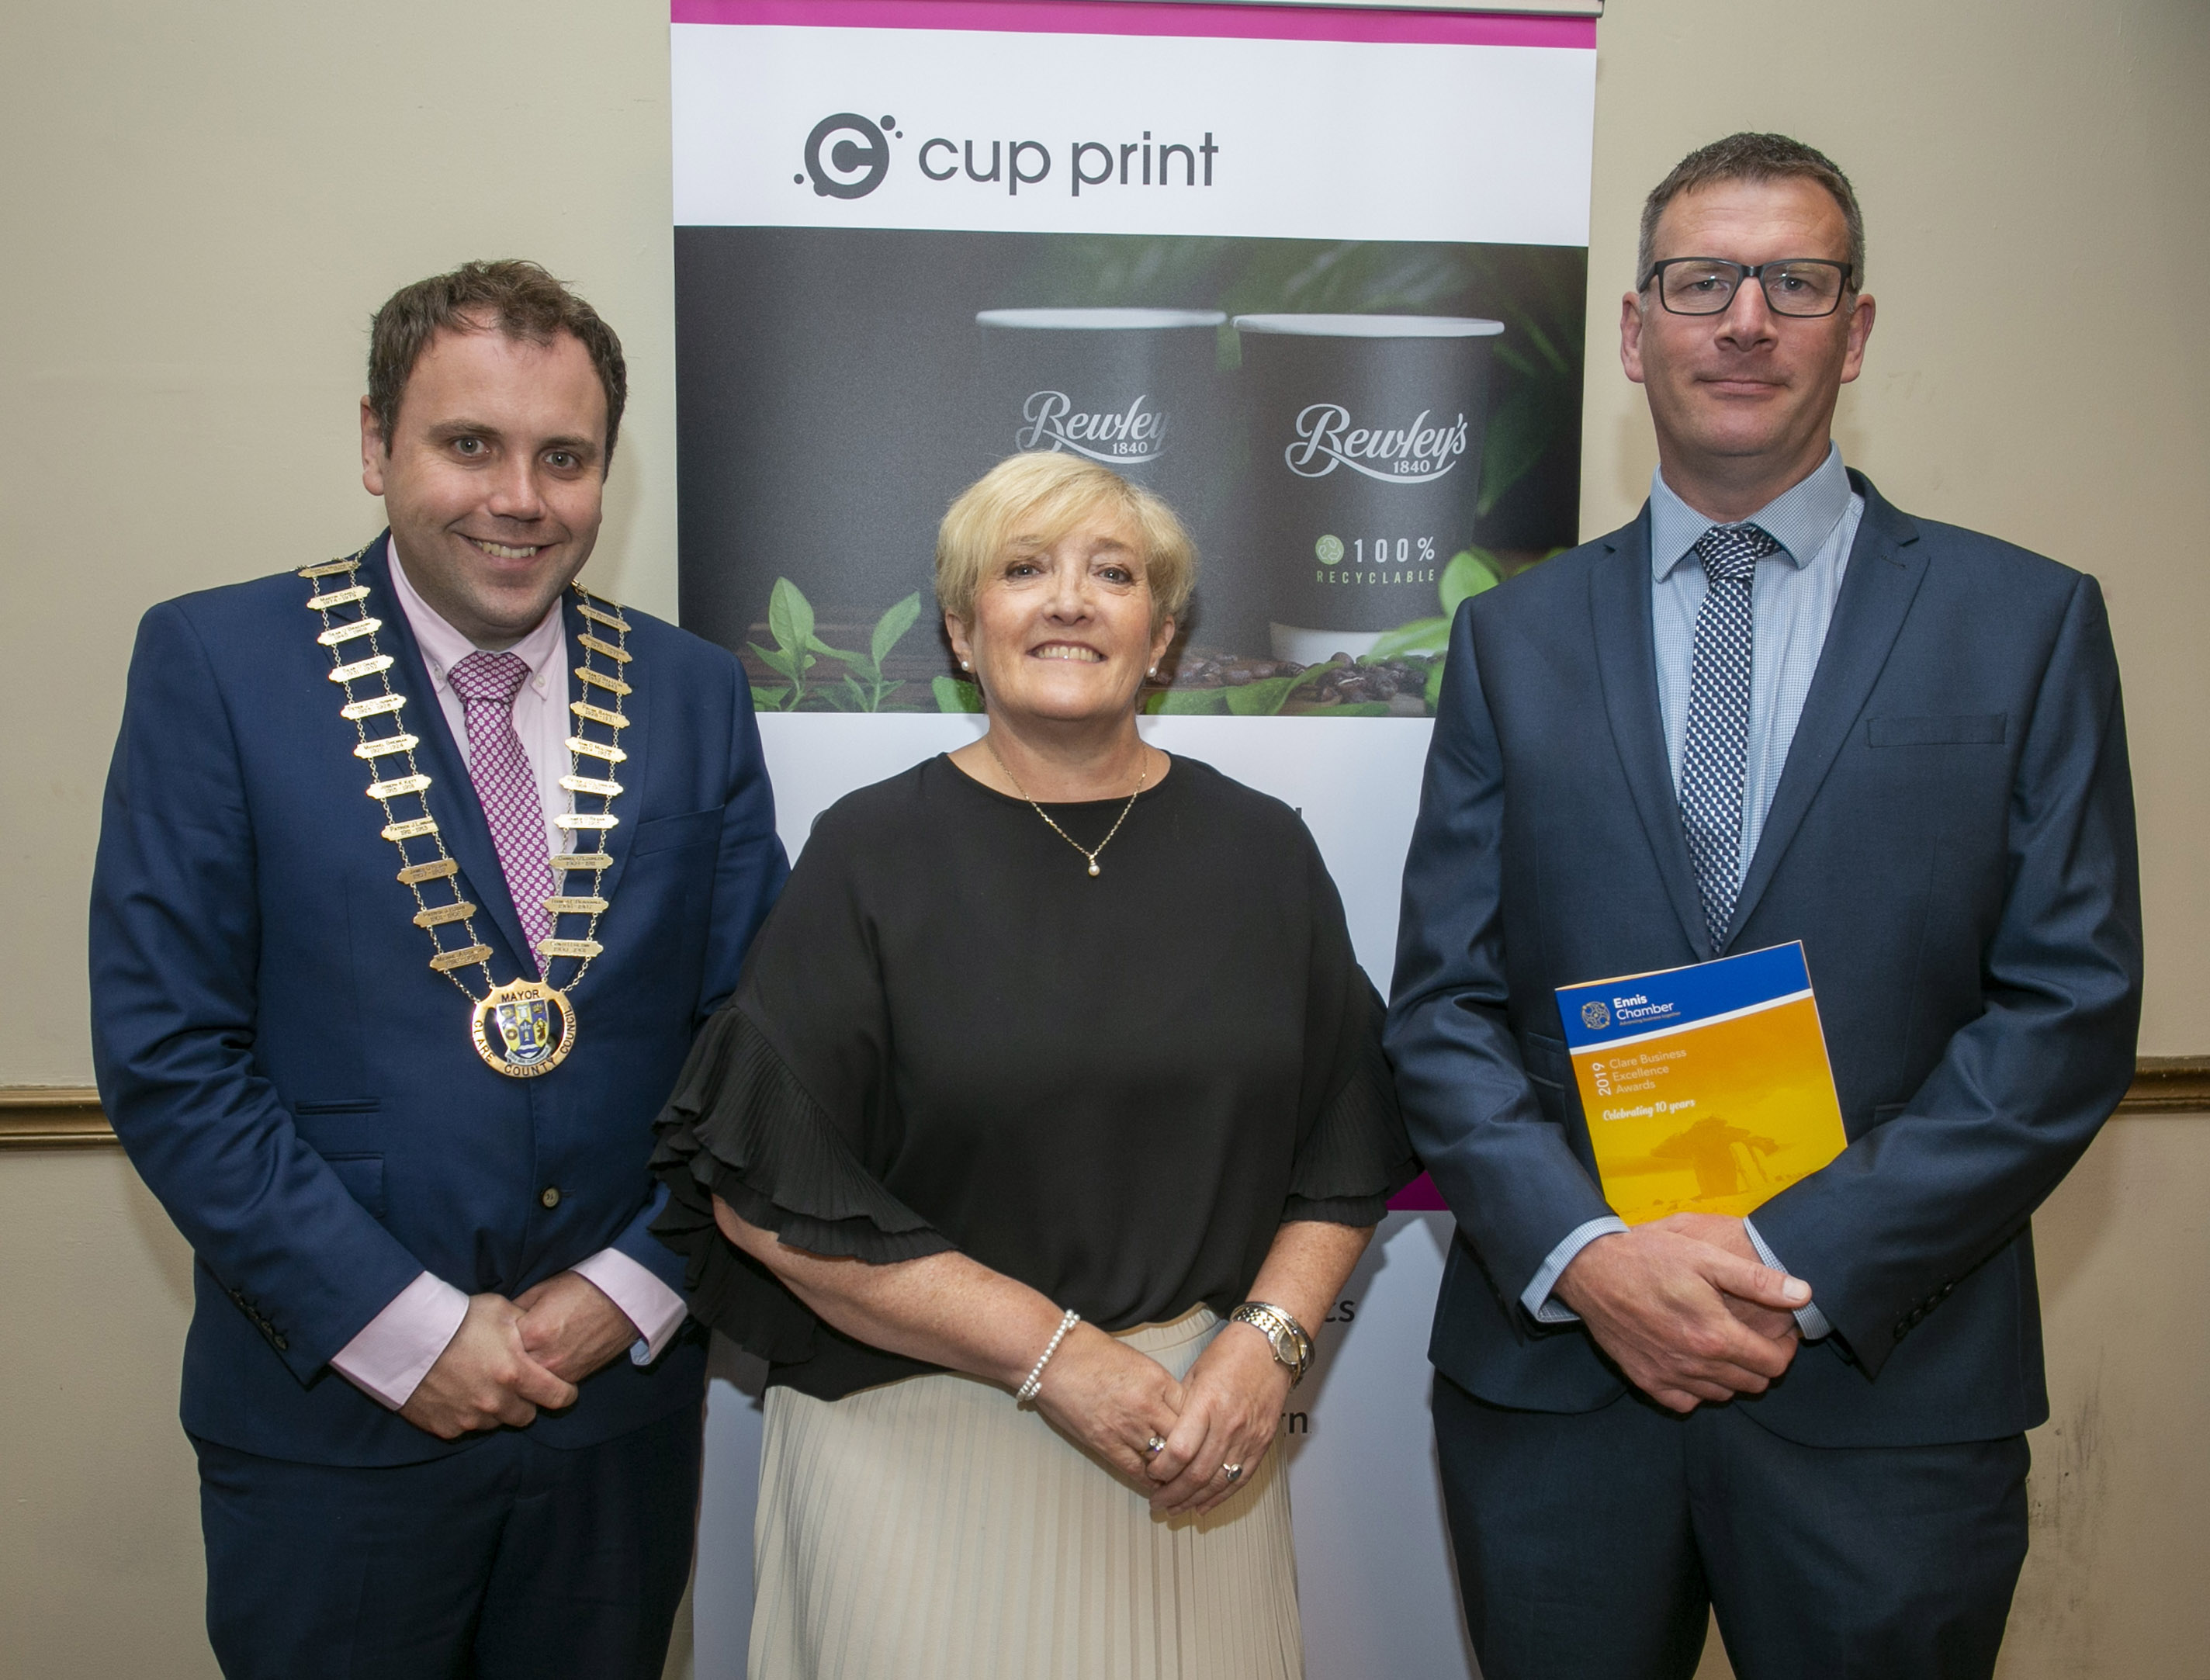 Clare business excellence awards 2019 cupprint